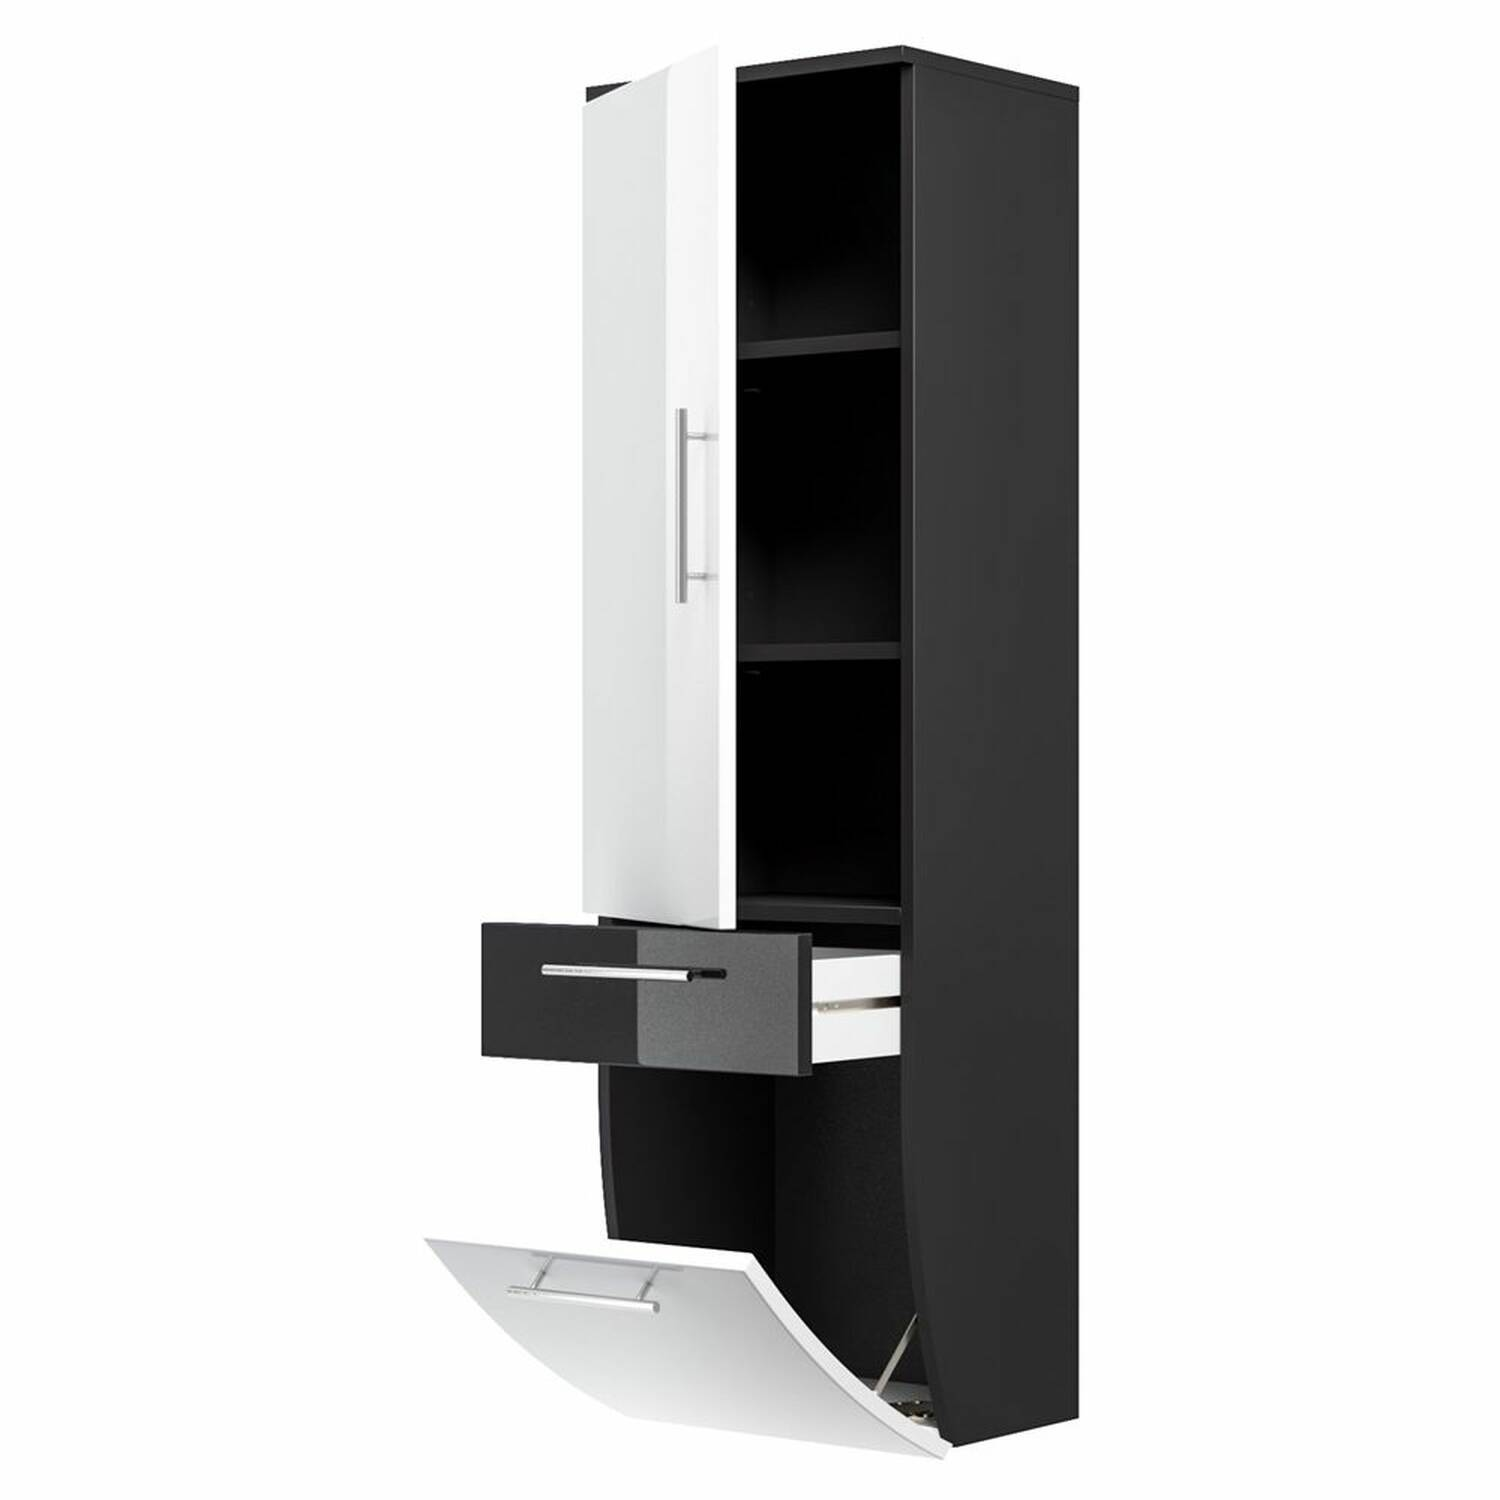 hochschrank talona 02 hochglanz wei anthrazit. Black Bedroom Furniture Sets. Home Design Ideas